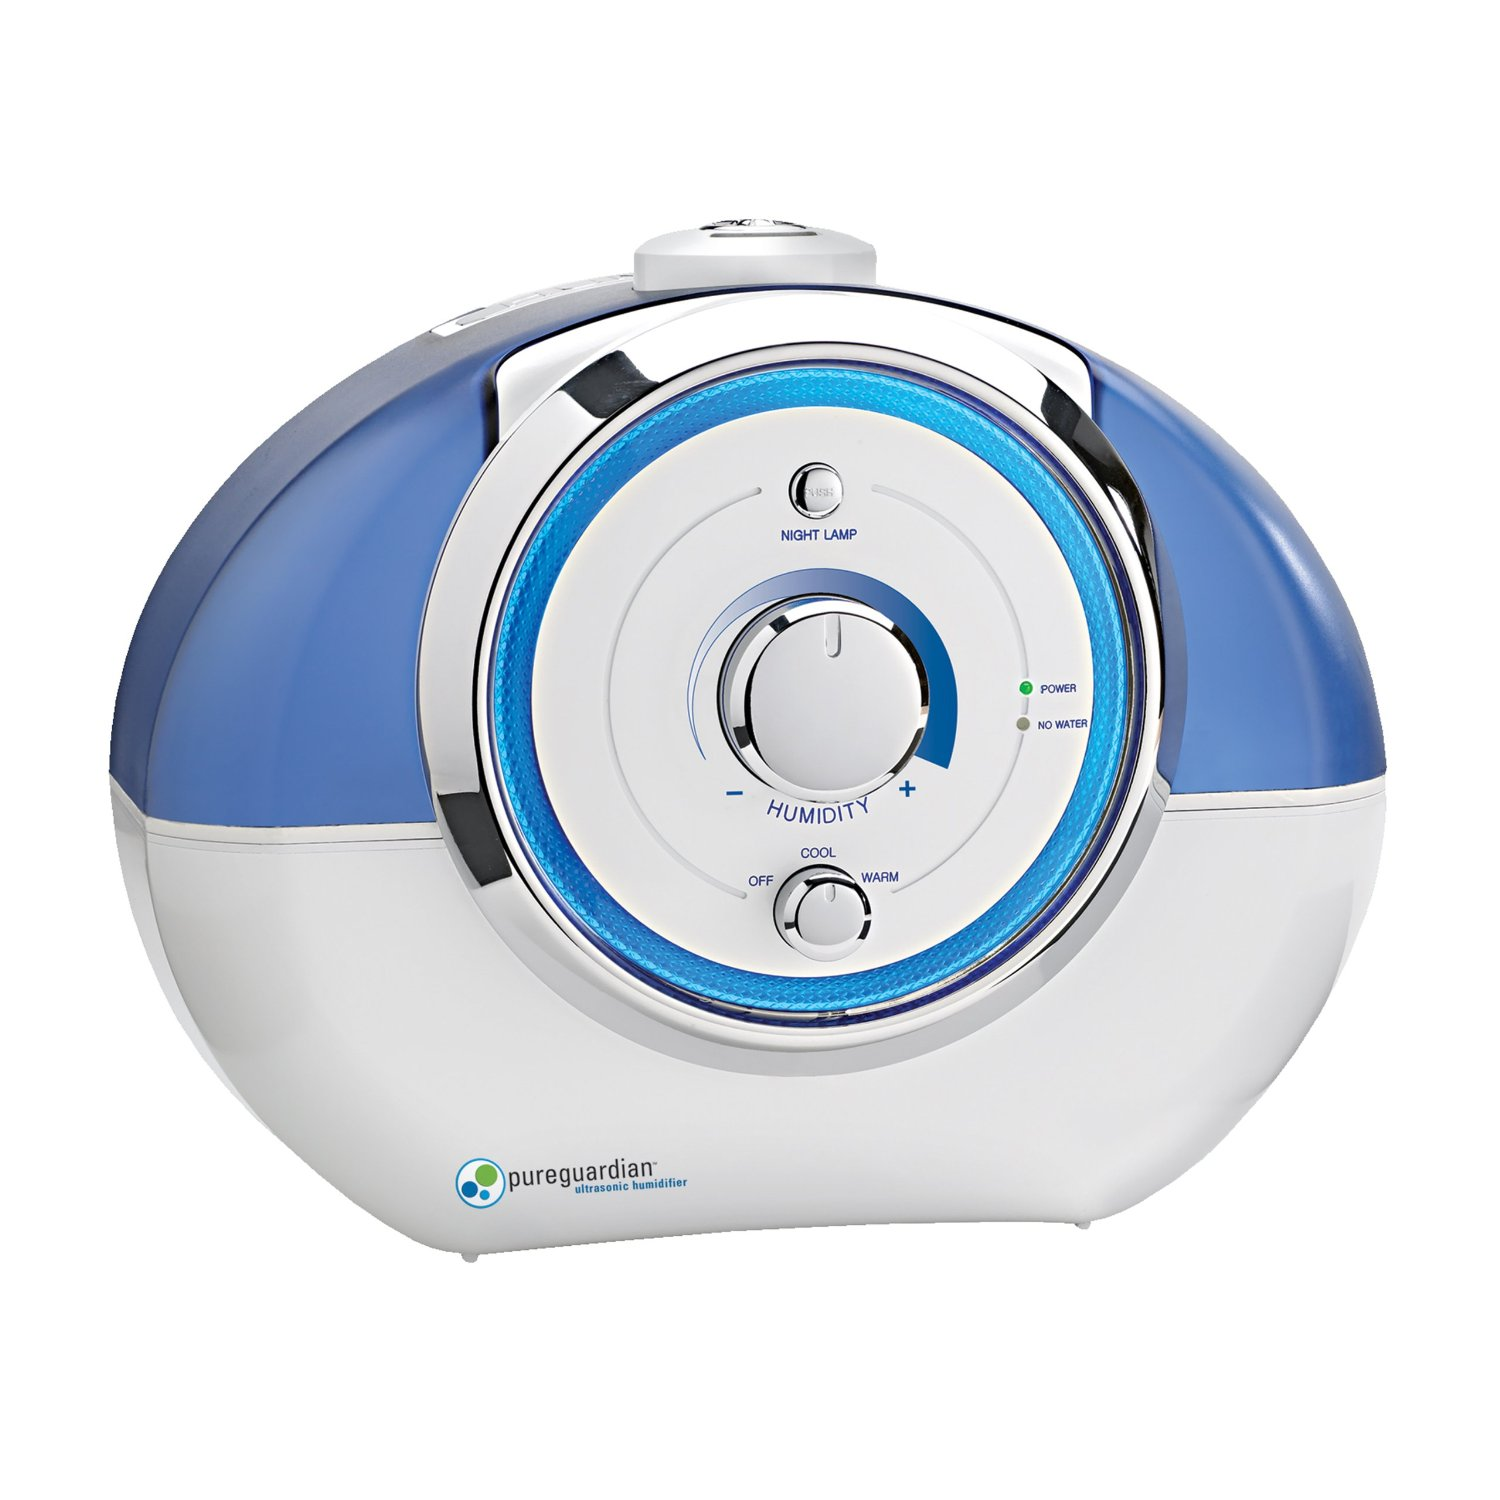 Pureguardian Ultrasonic Humidifier Reviews 2015 2016 #148AB7